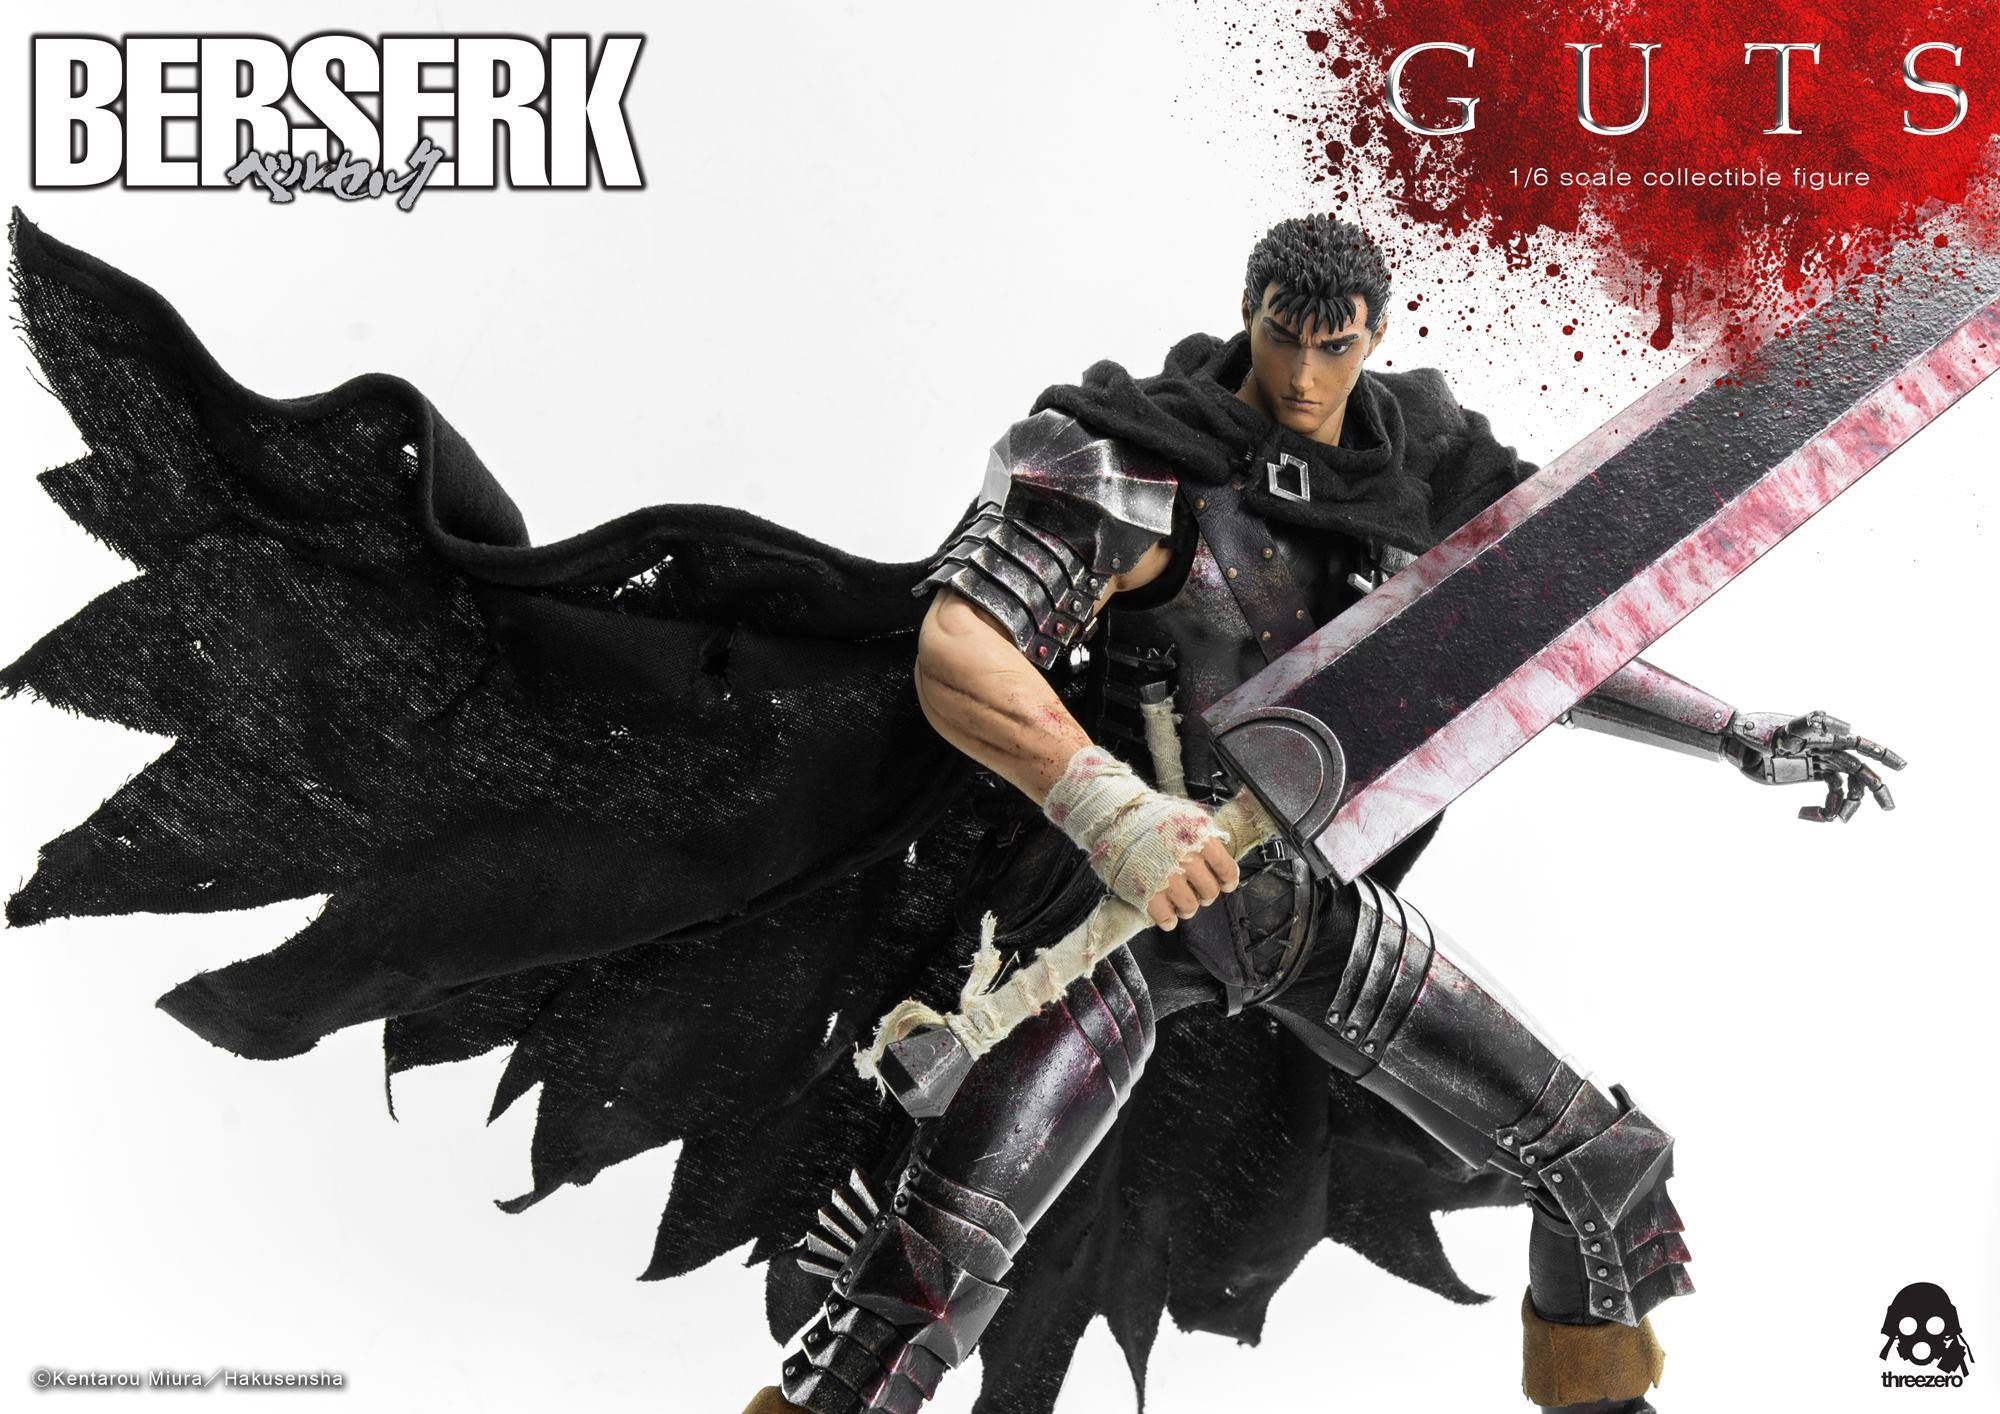 Threezero - Berserk - Guts (Reissue) - Marvelous Toys - 10